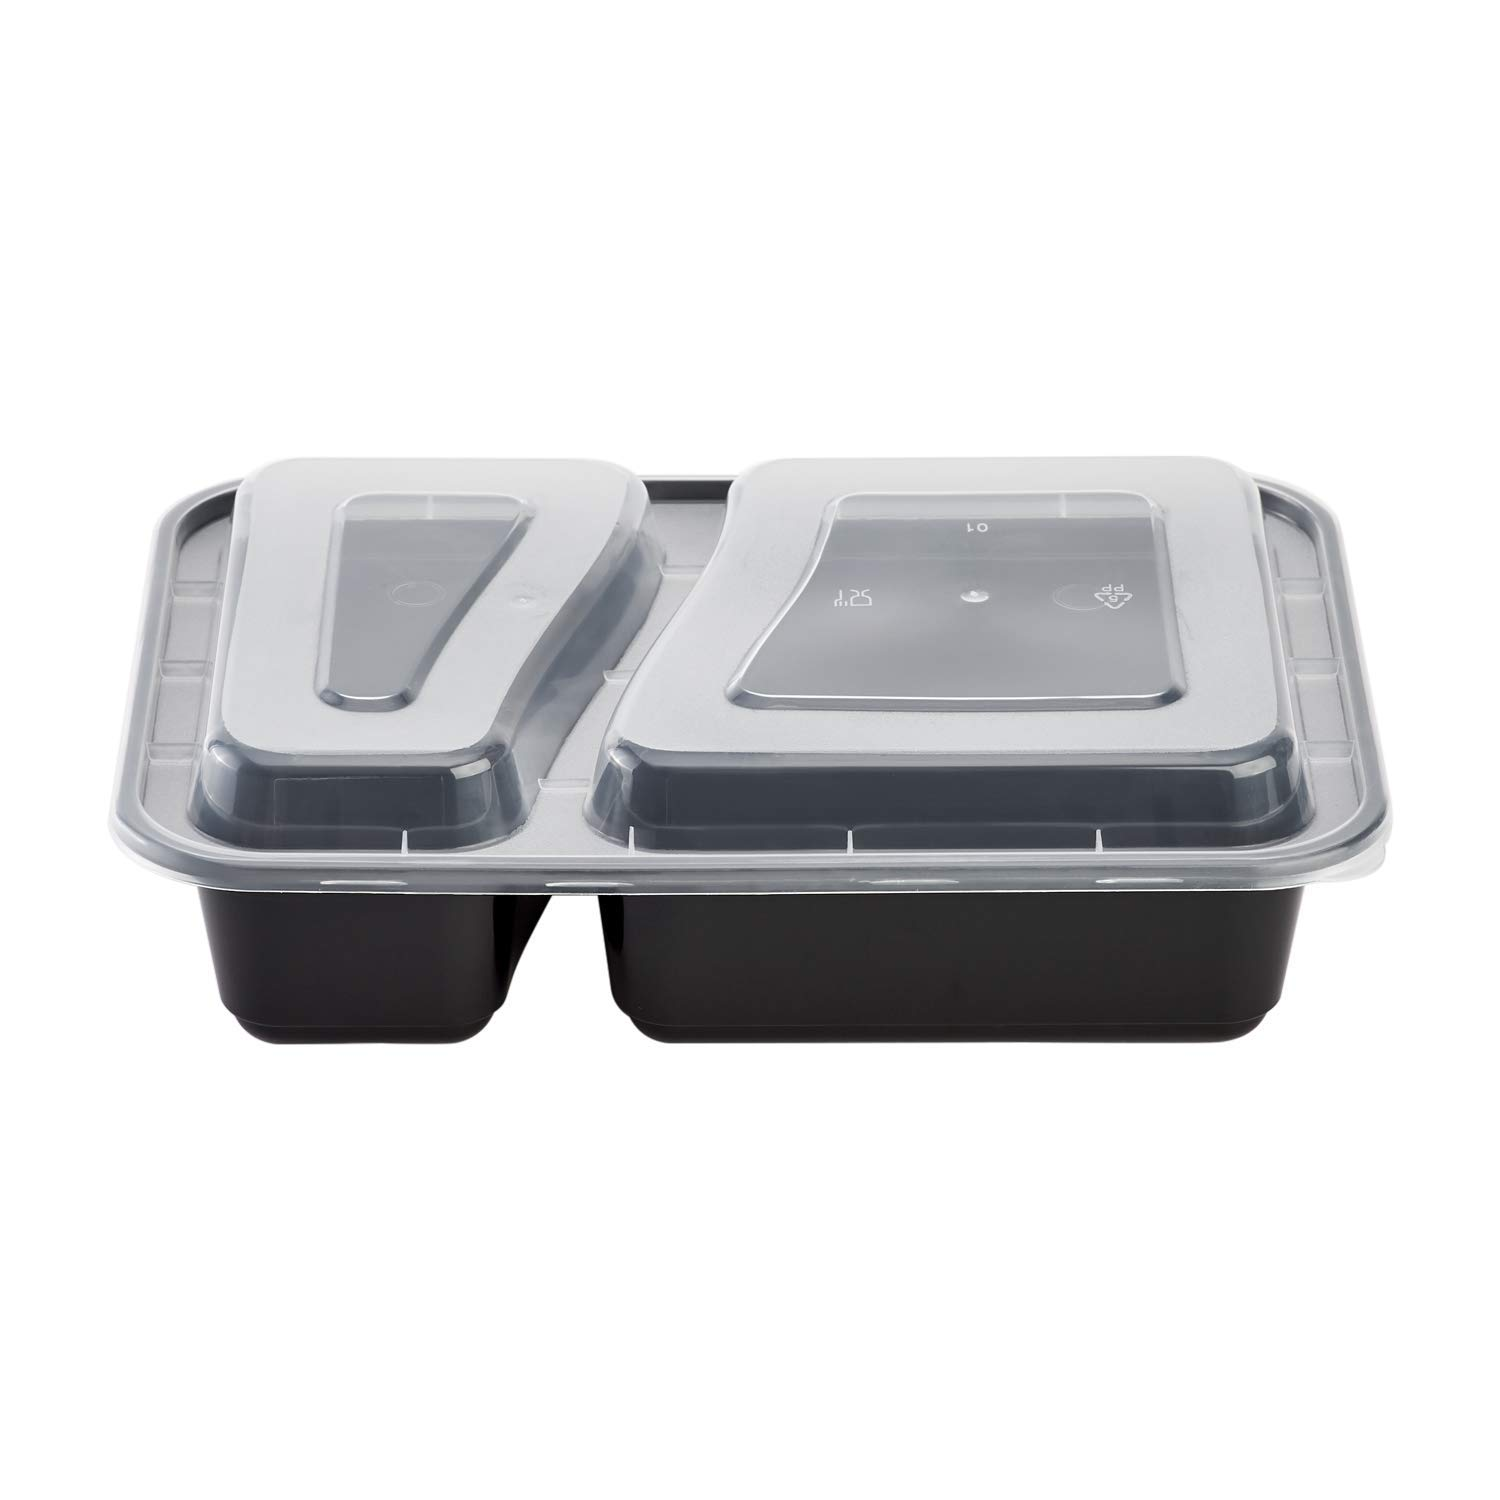 Karat IM-FC1030B-2C 38 oz. PP Injection Molding Microwaveable Food Containers with Clear Lids, 2-Compartment, Rectangular - Black (Case of 150)